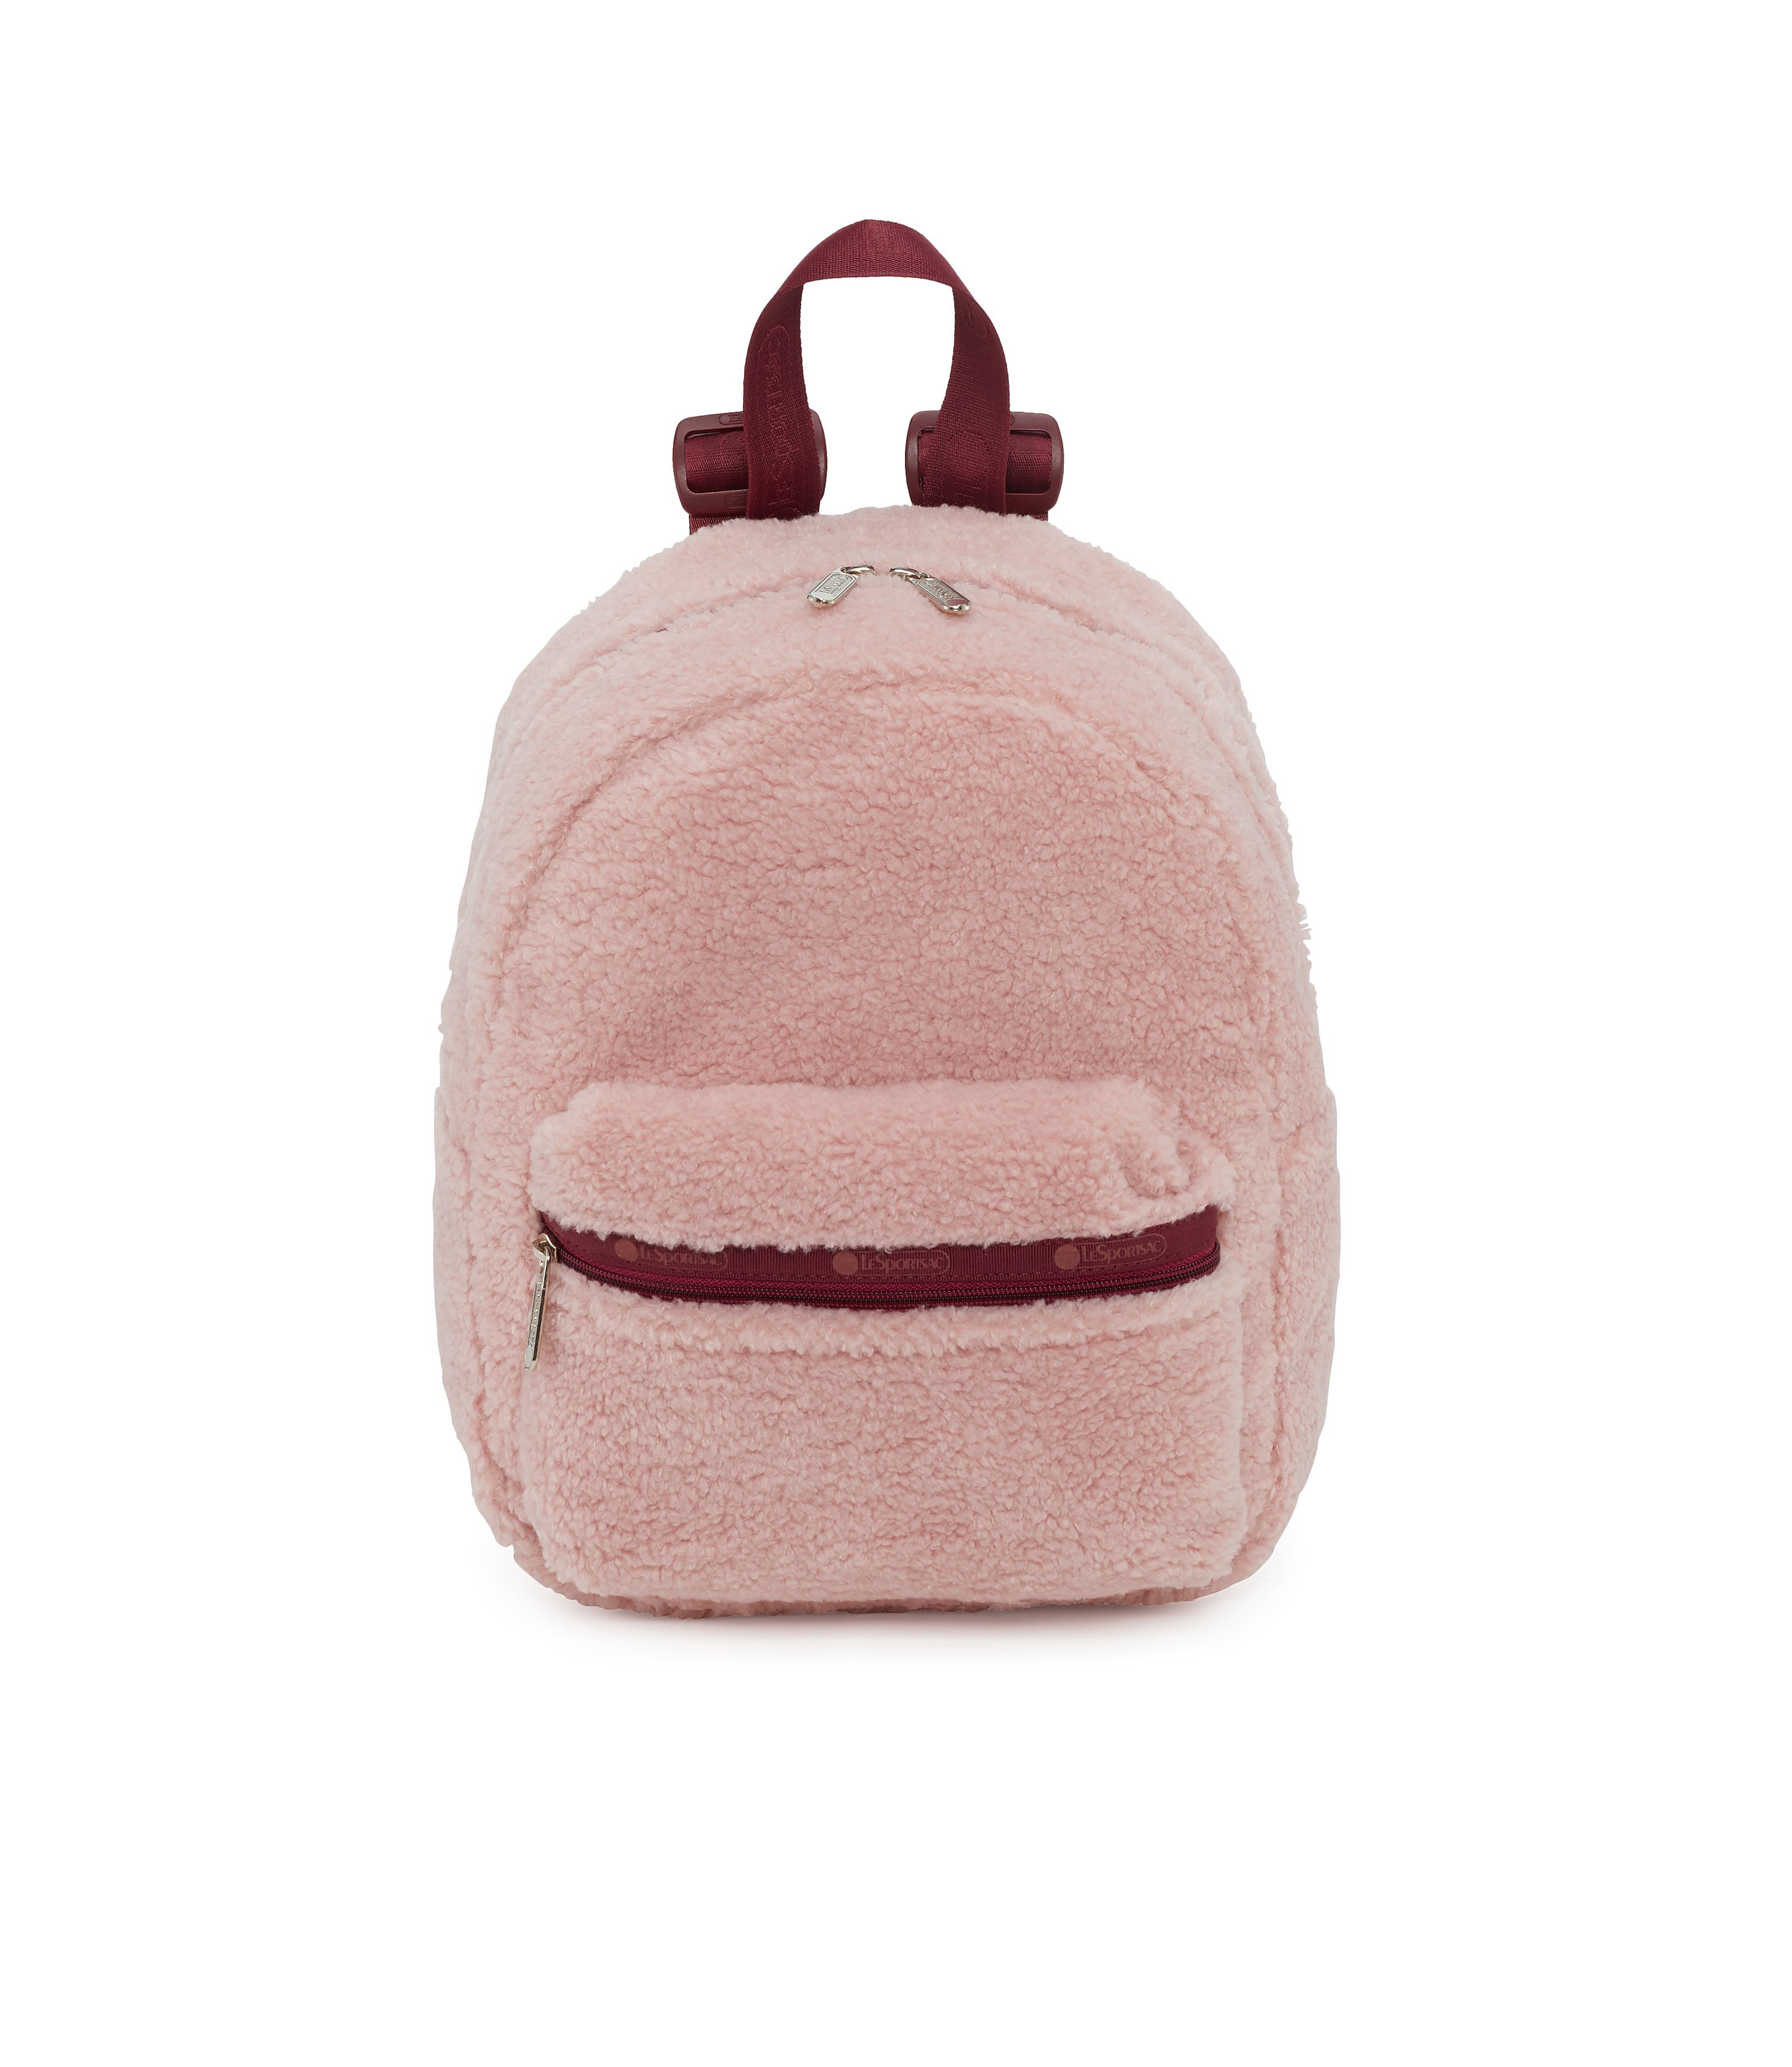 Le Sports Sac faux shearling mini backpack, $110 @lesportsac.com